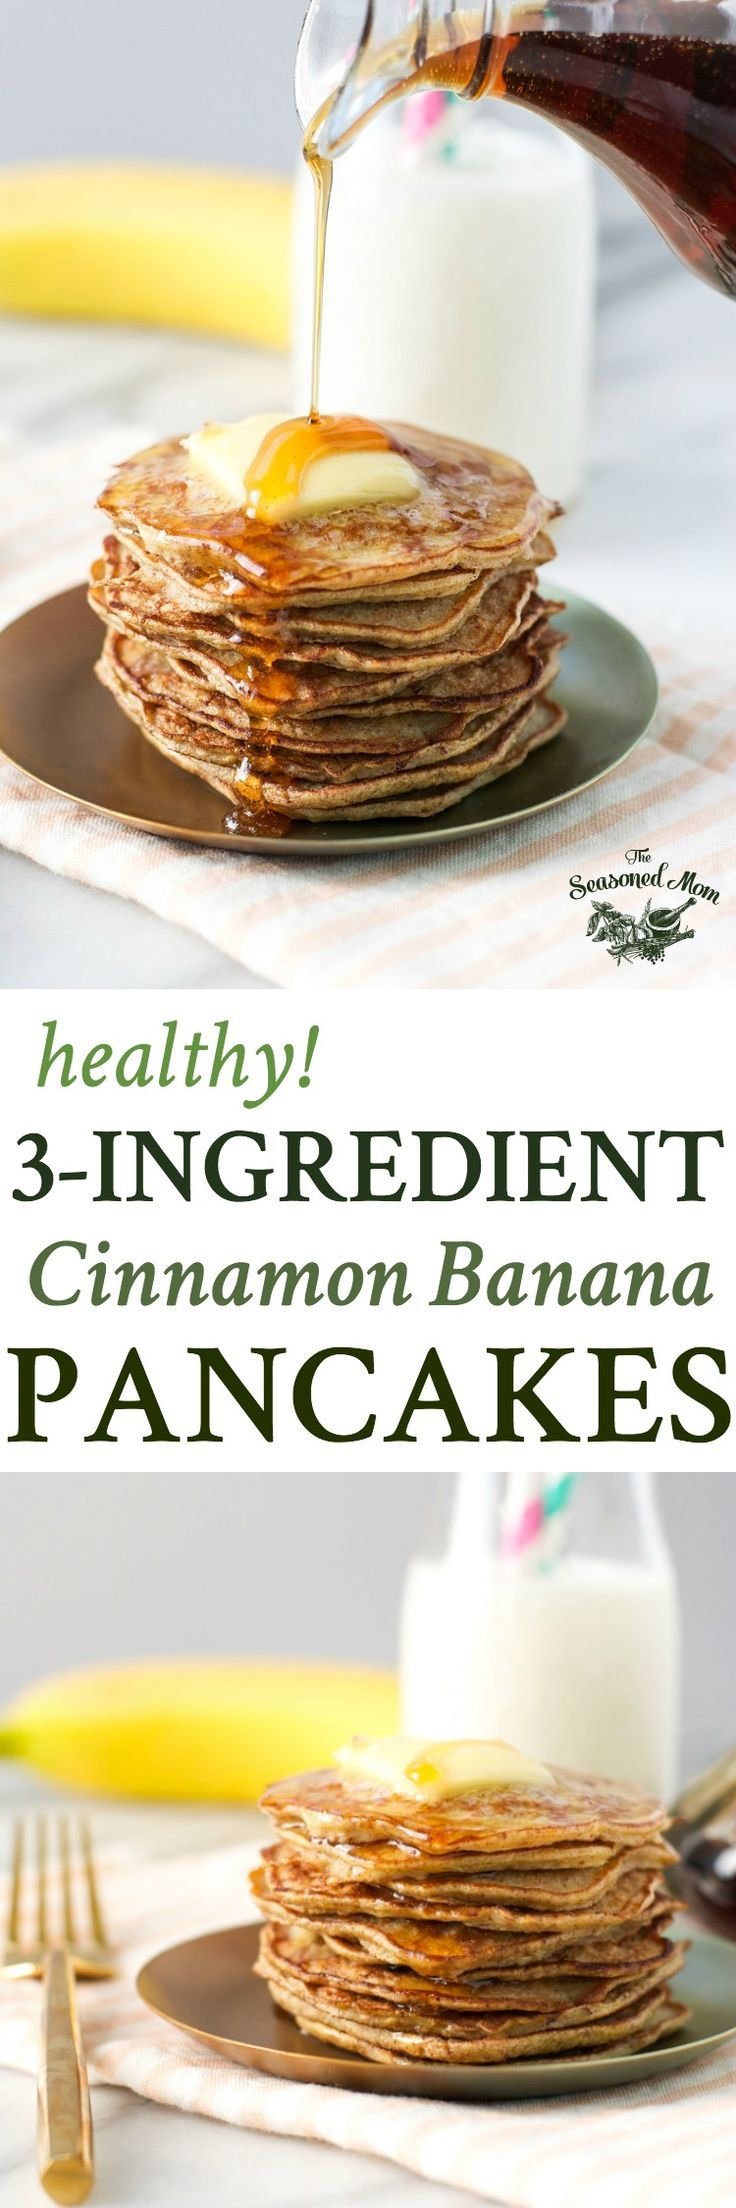 1215 best Family Breakfast Recipes images on Pinterest | Cooking ...